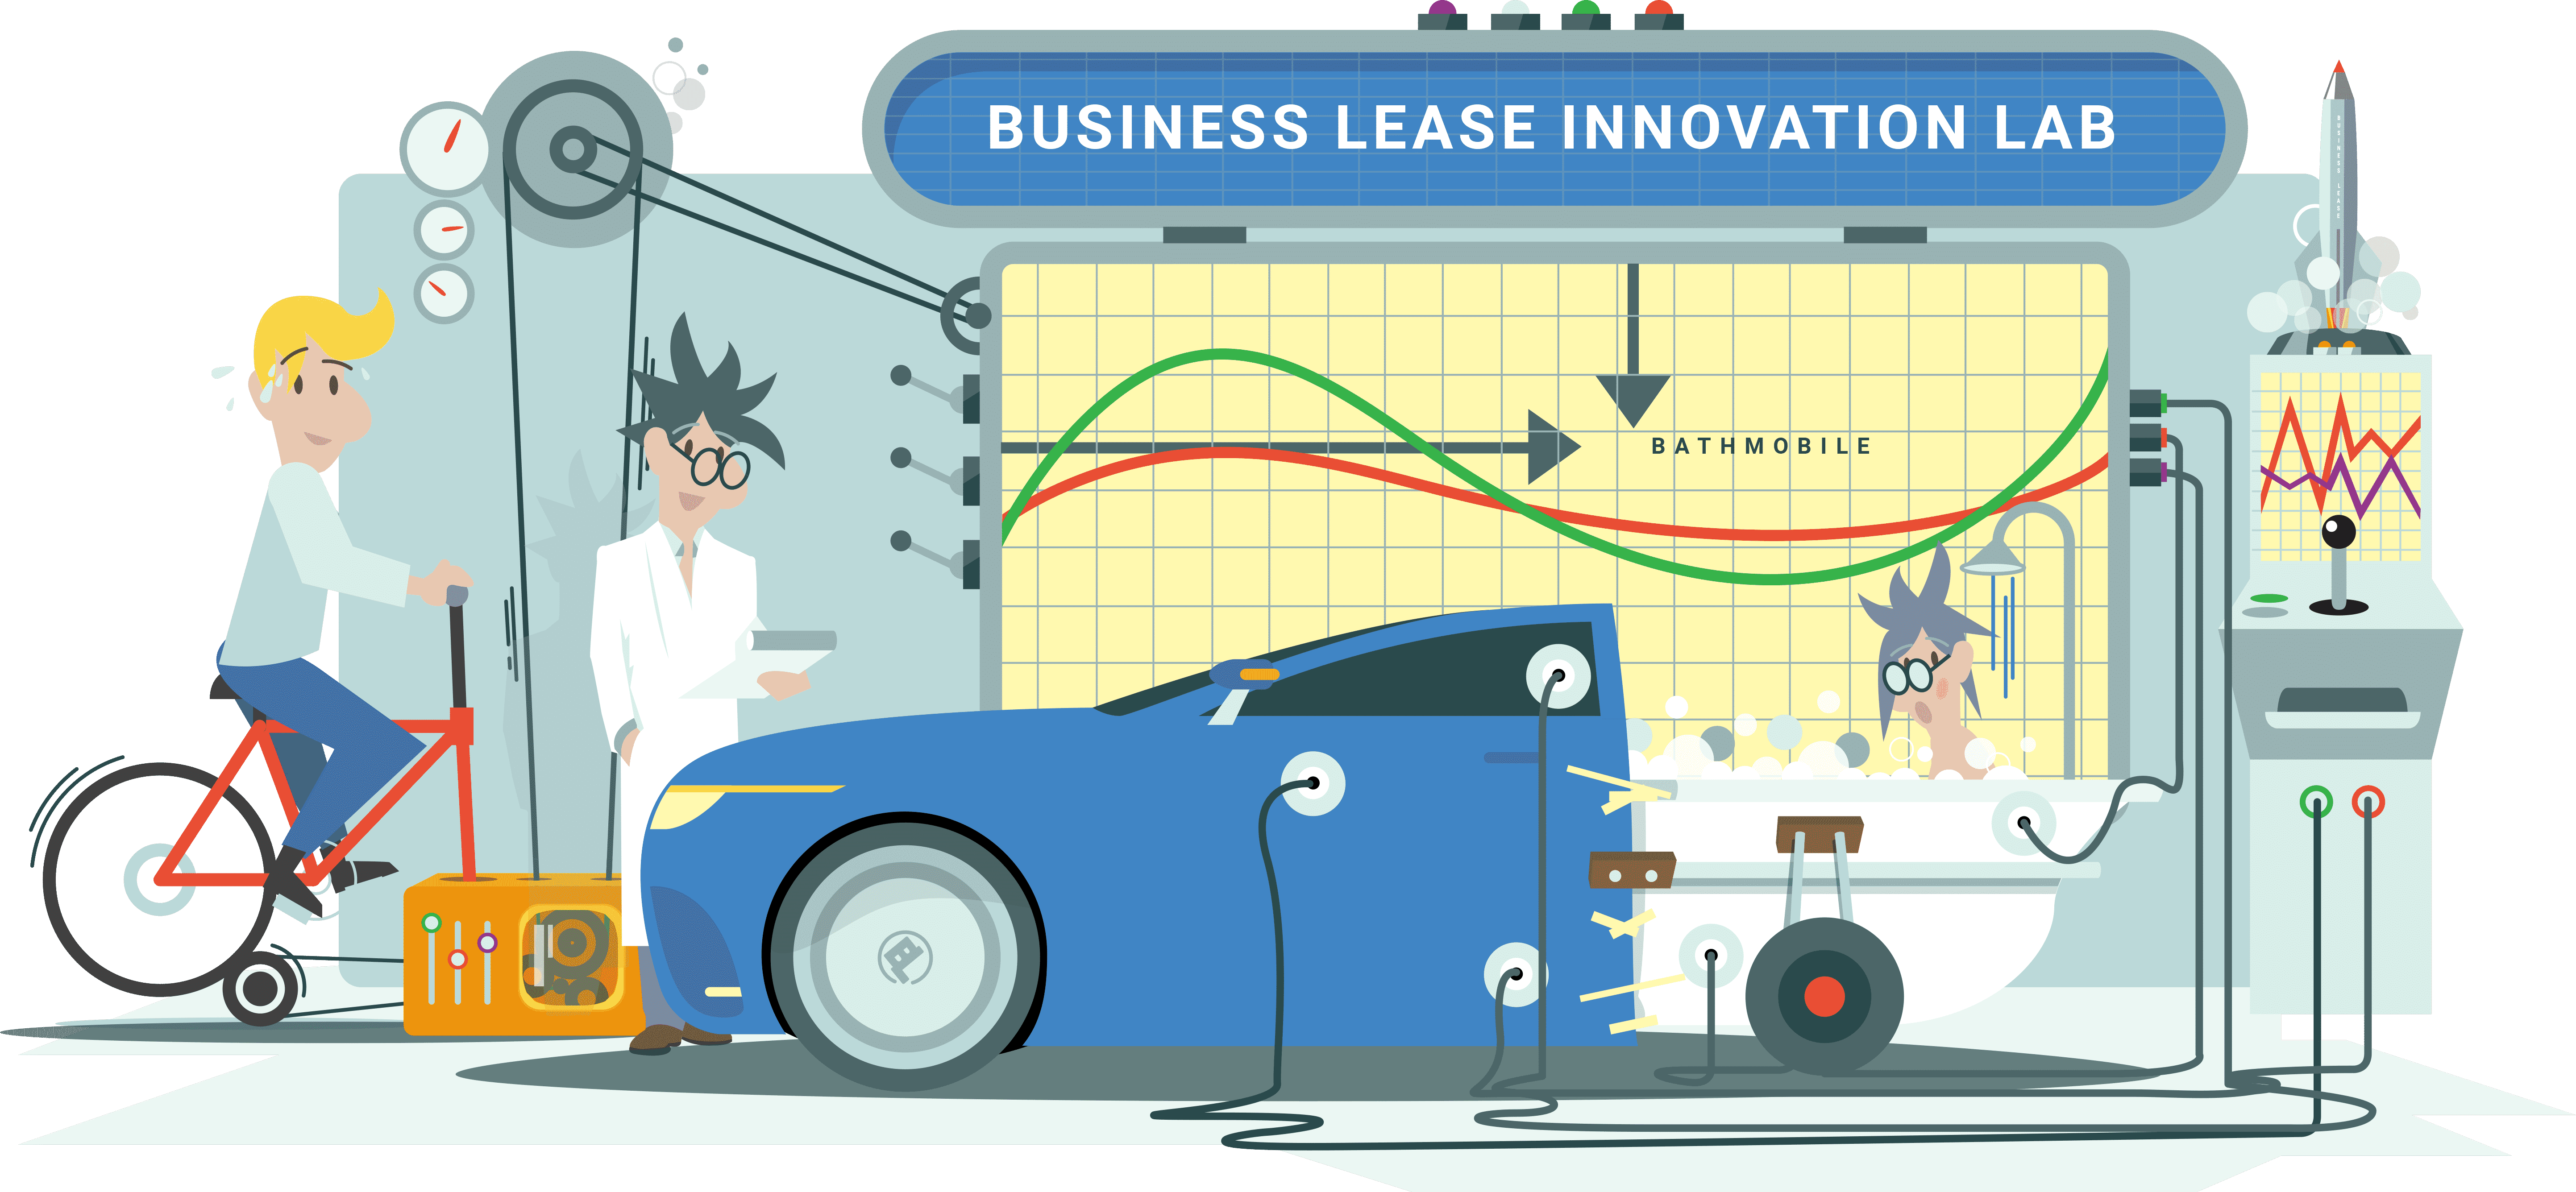 40016080 Illustration InnovationLab